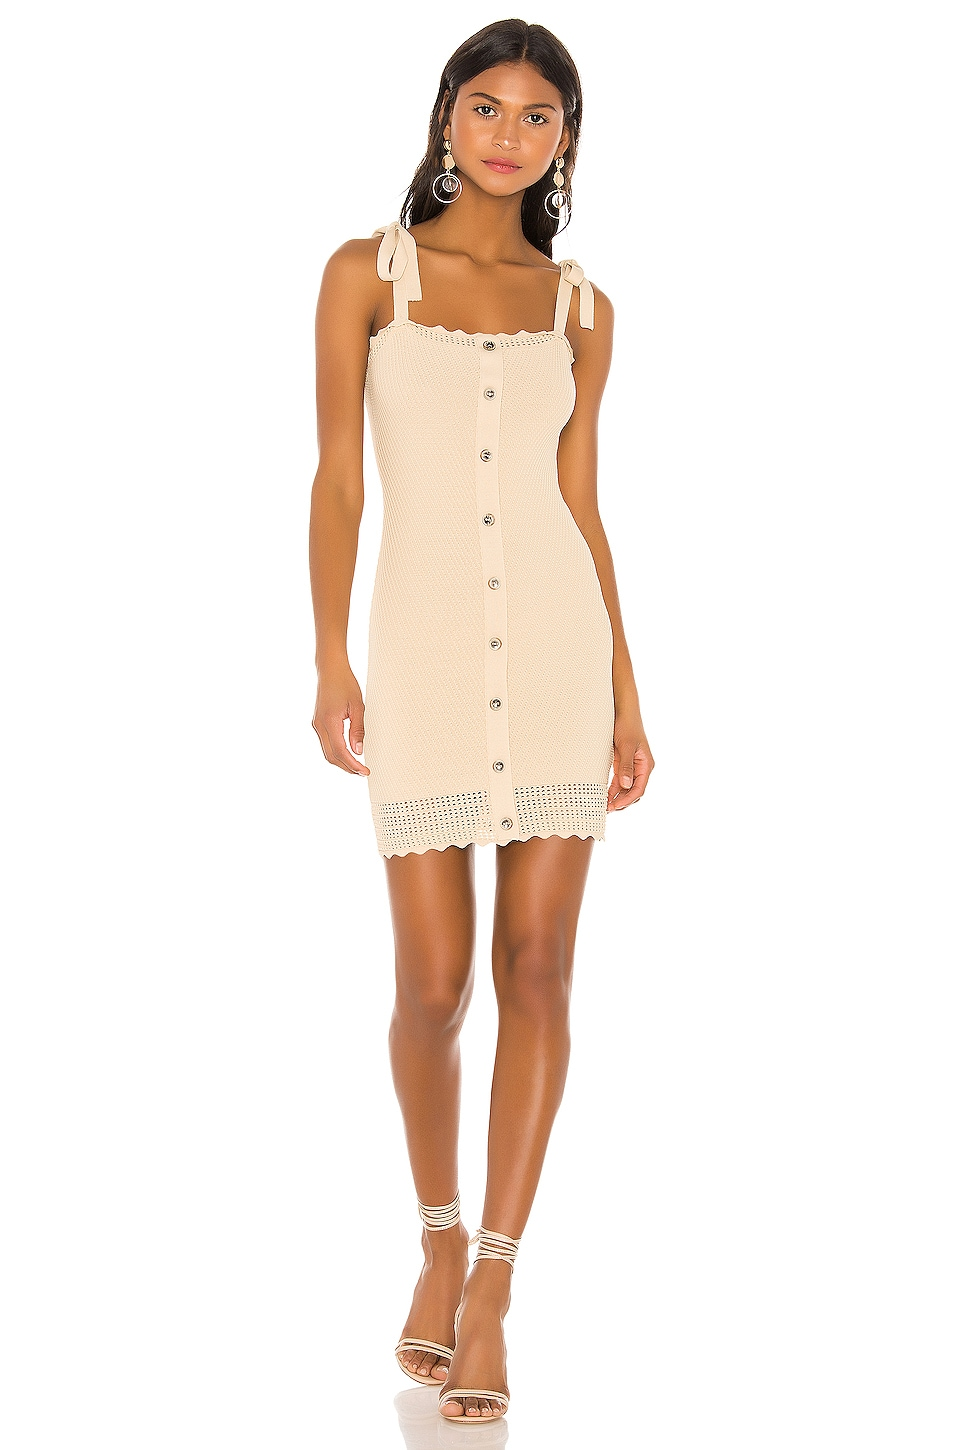 THE JETSET DIARIES Love Song Mini Dress in Sand/Cream